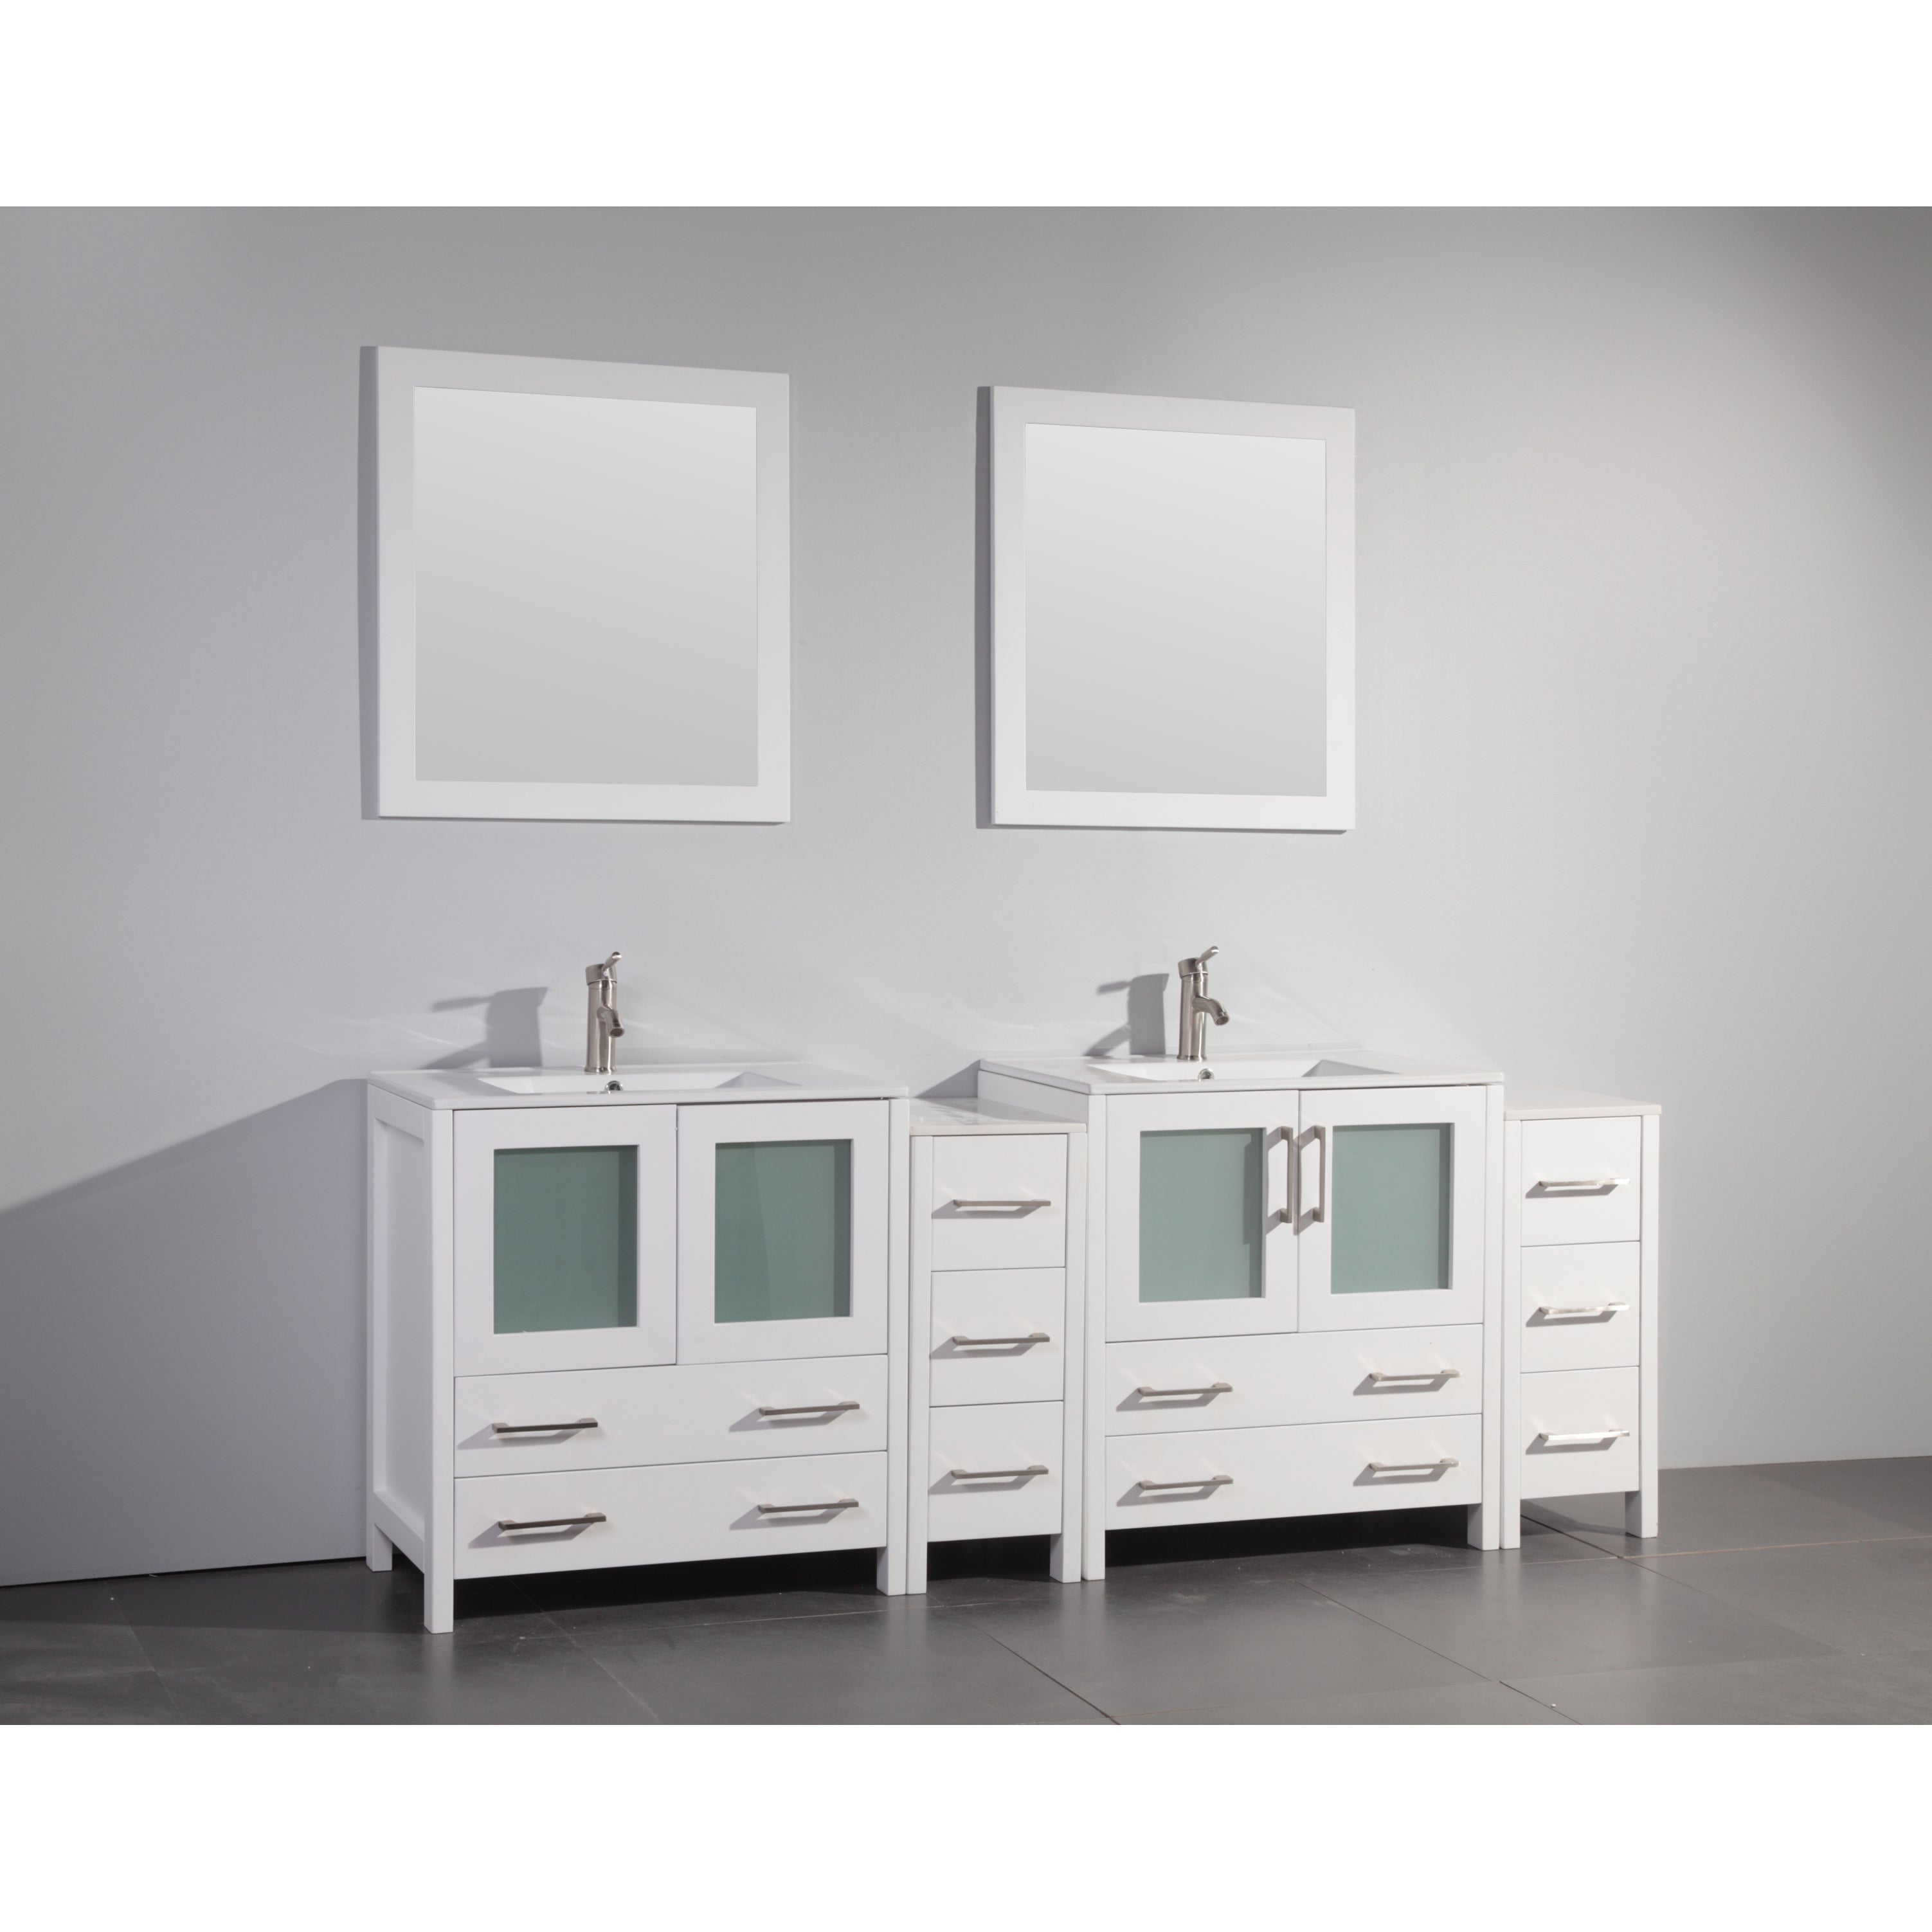 84 inch double sink vanity top. 84 Inch Vanity Top Double Sink Compare Prices At Nextag  Catarsisdequiron